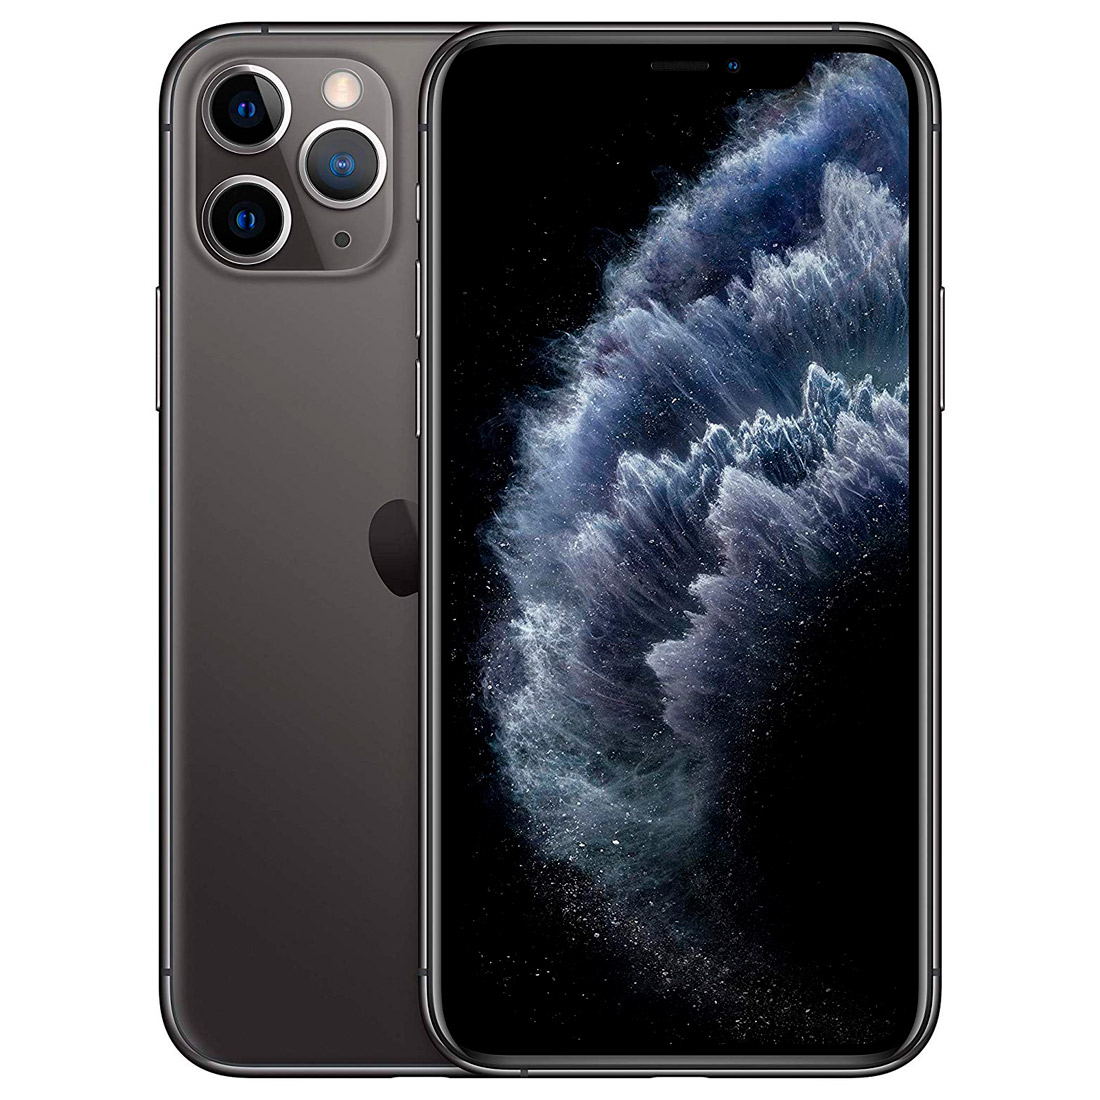 Smartphone iPhone 11 Pro 256GB Space Grey 5.8""